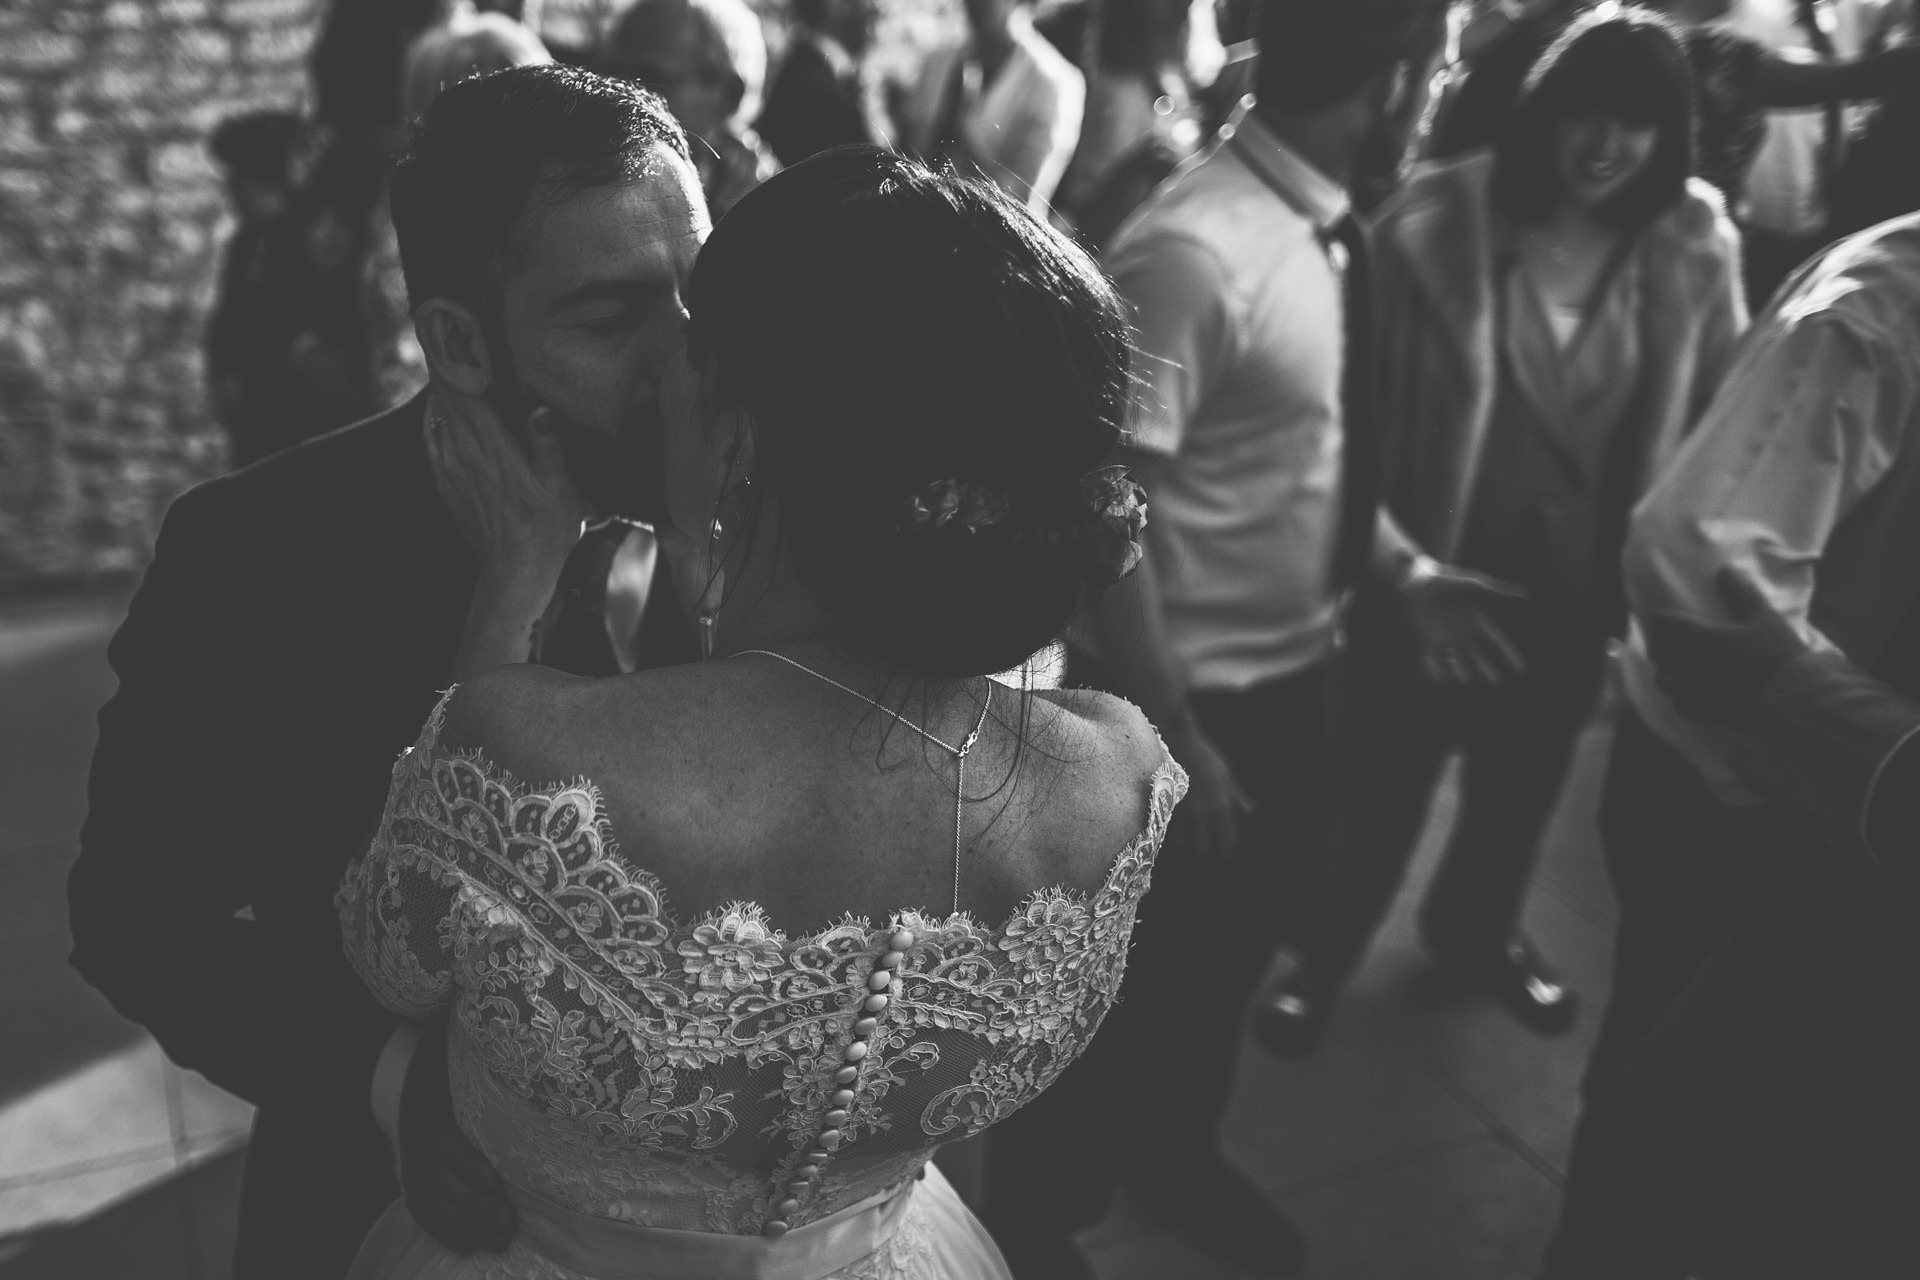 Best wedding photography 2016 - black and white dancing shot